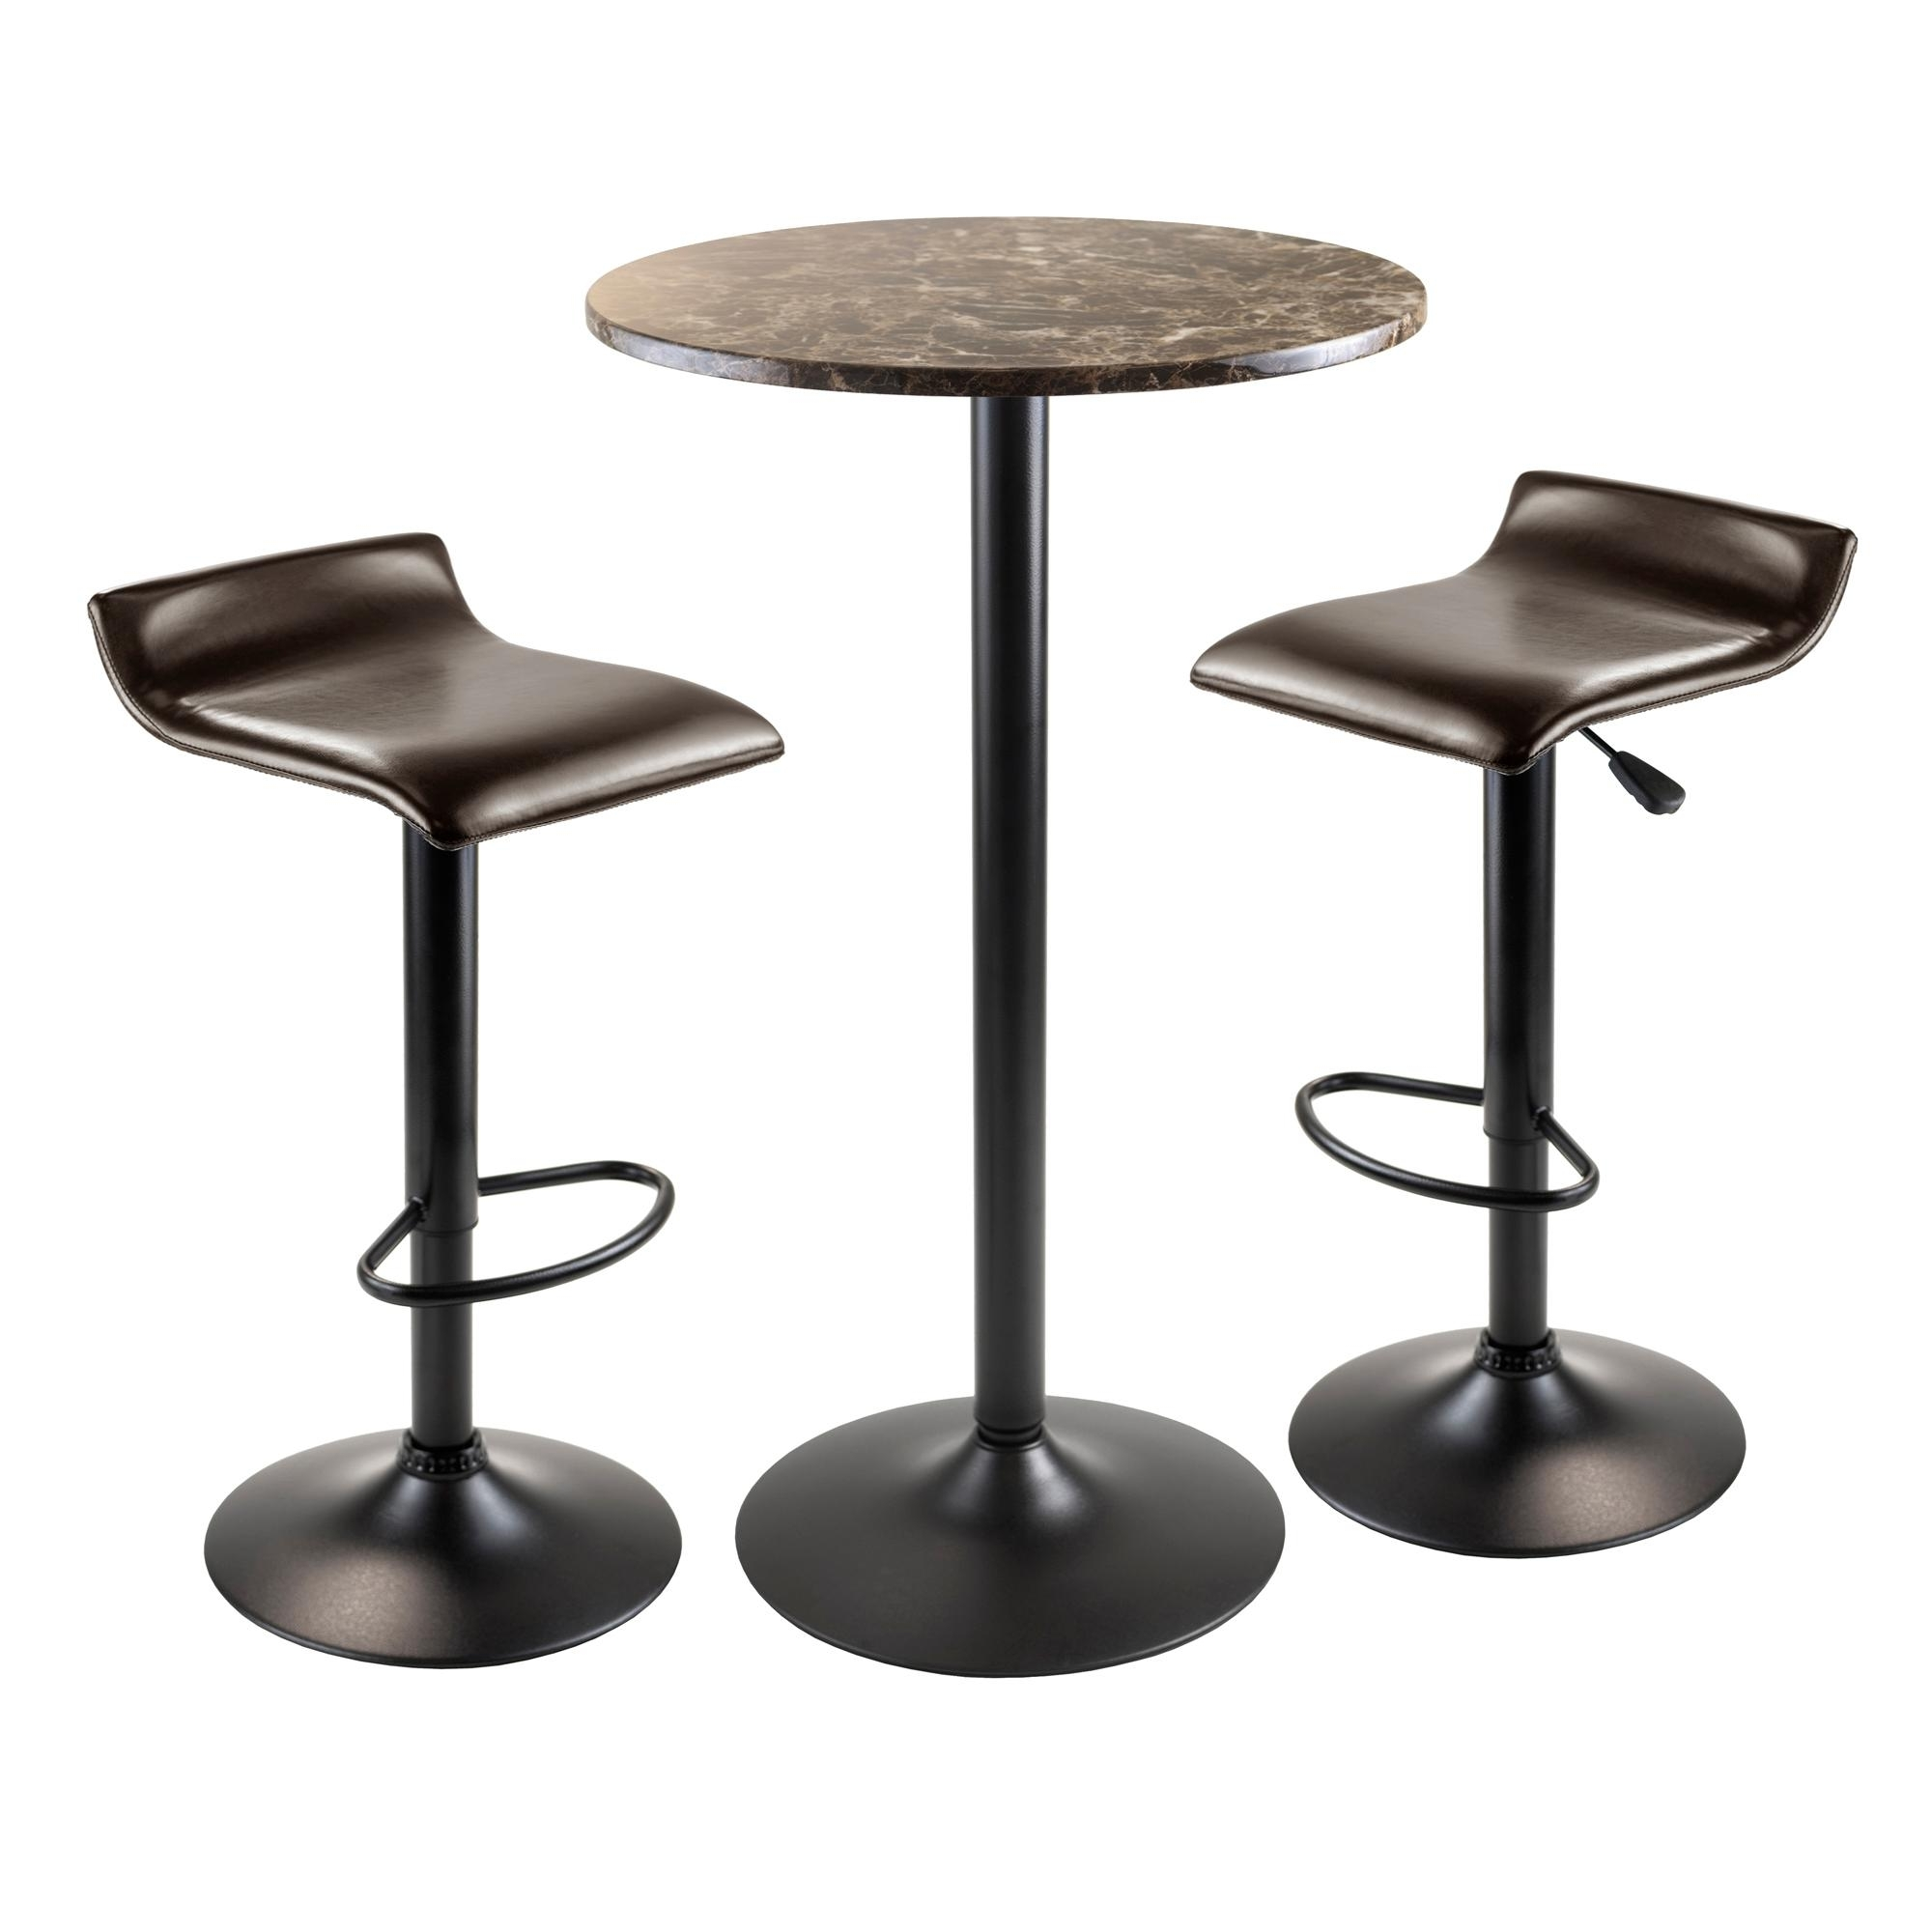 Amazon: Winsome Wood Cora 3 Piece Round Pub Table With 2 Swivel Intended For Latest Cora 7 Piece Dining Sets (View 5 of 25)